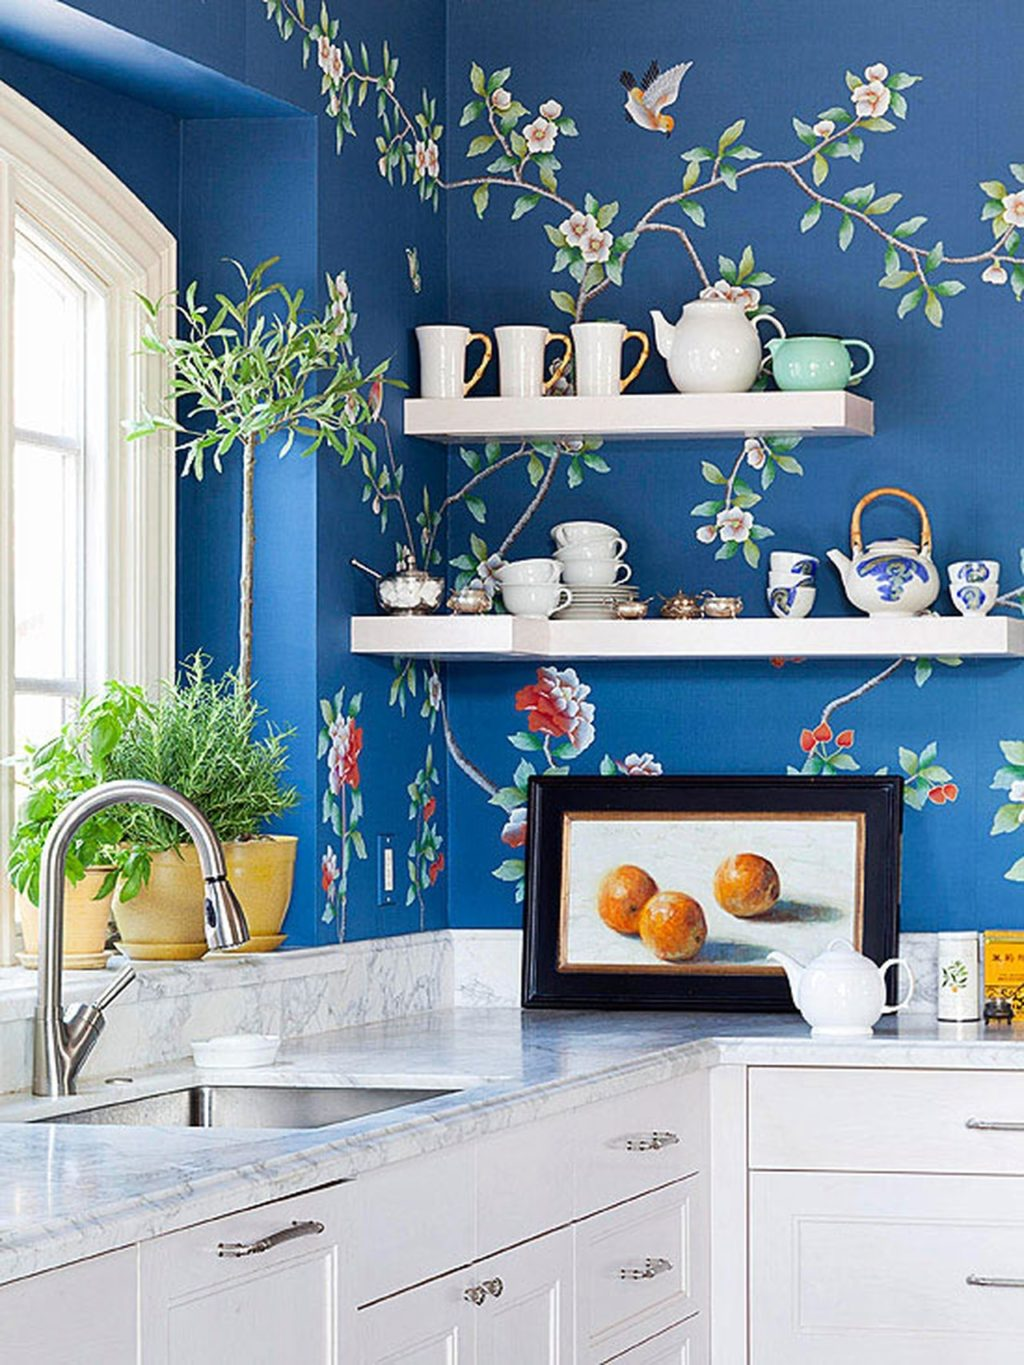 Scenery-wallpapers..-1024x1365 80+ Unusual Kitchen Design Ideas for Small Spaces in 2021